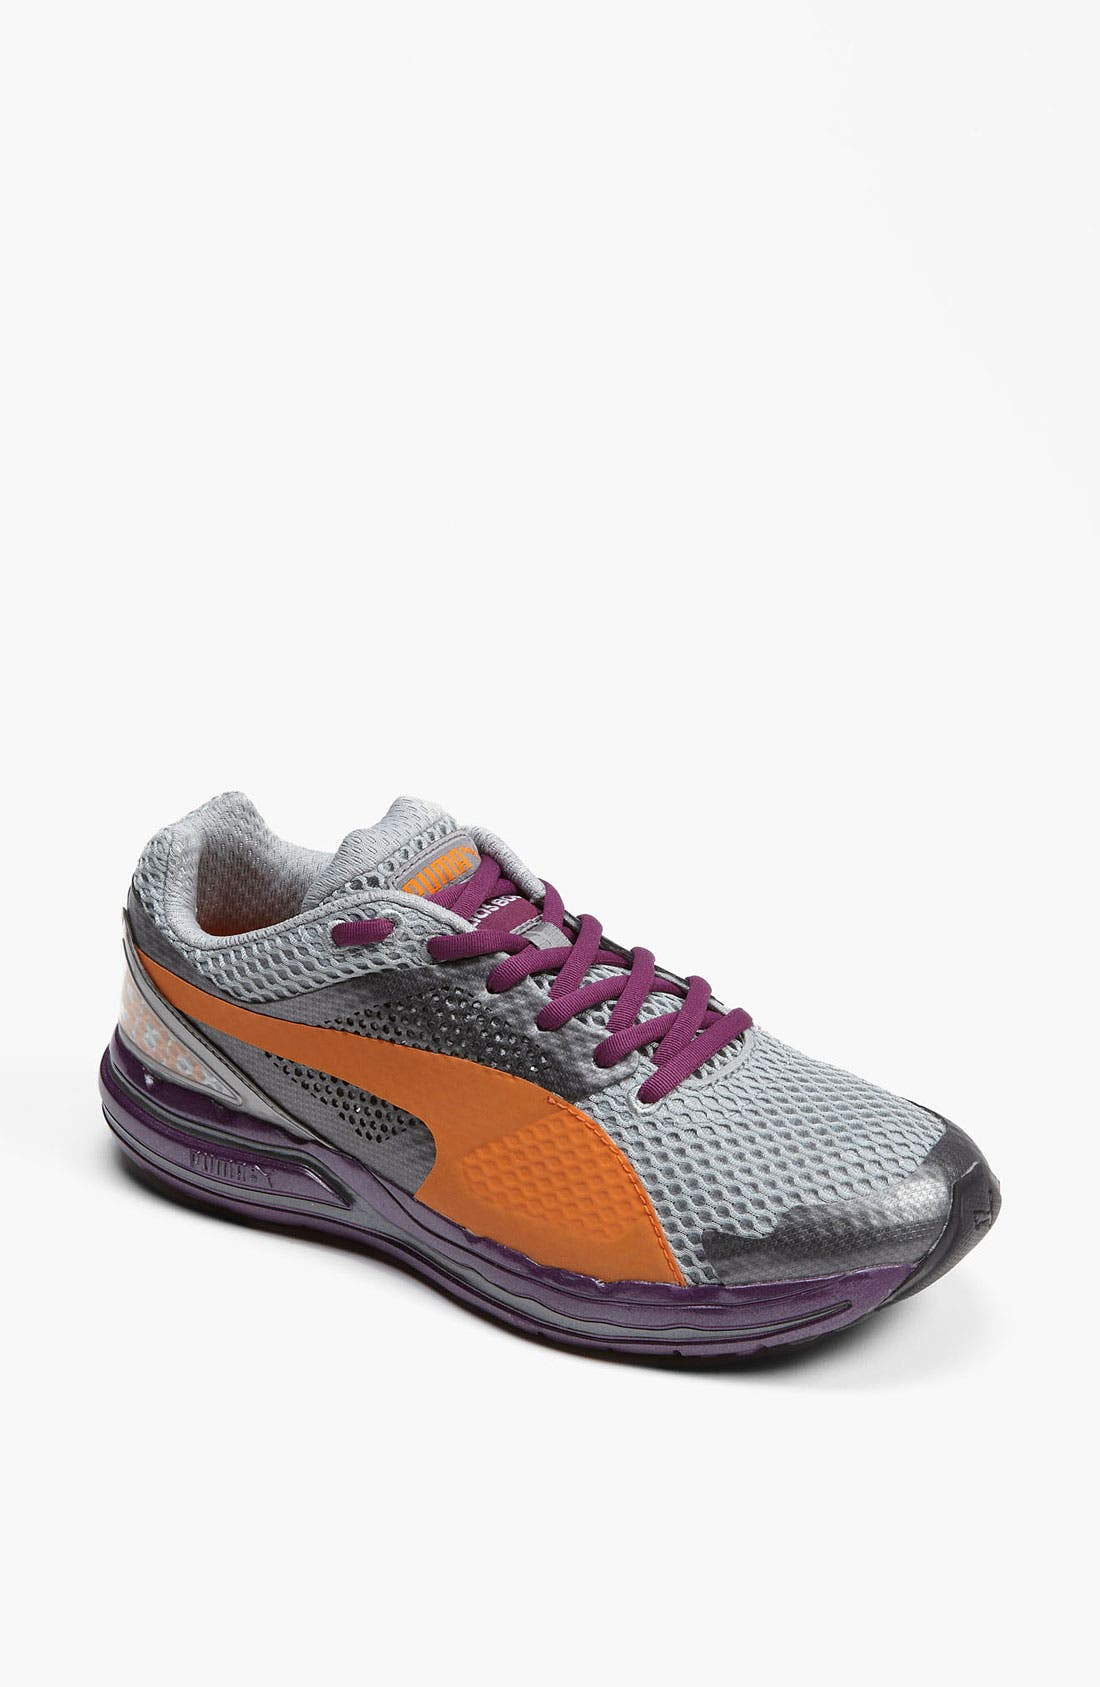 Alternate Image 1 Selected - PUMA 'Faas 800 S' Sneaker (Women)